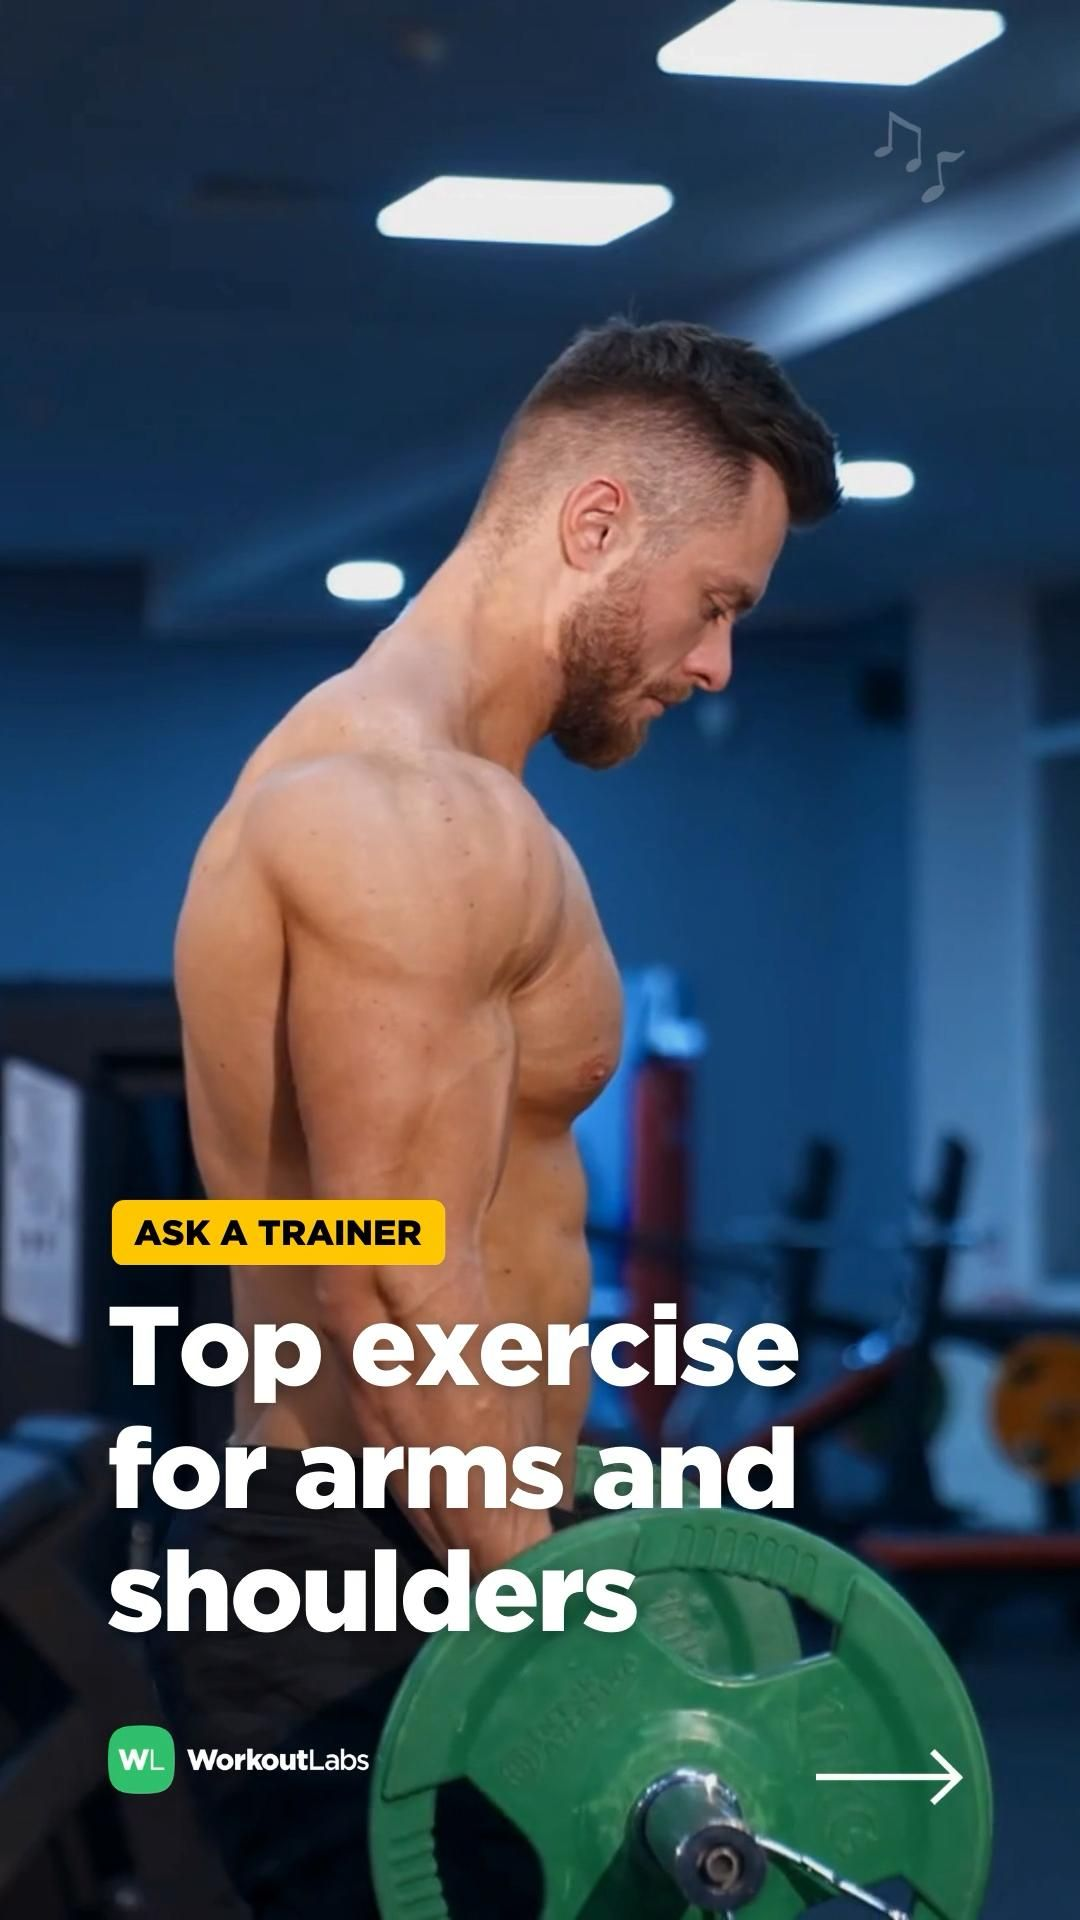 Top exercise for arms and shoulders